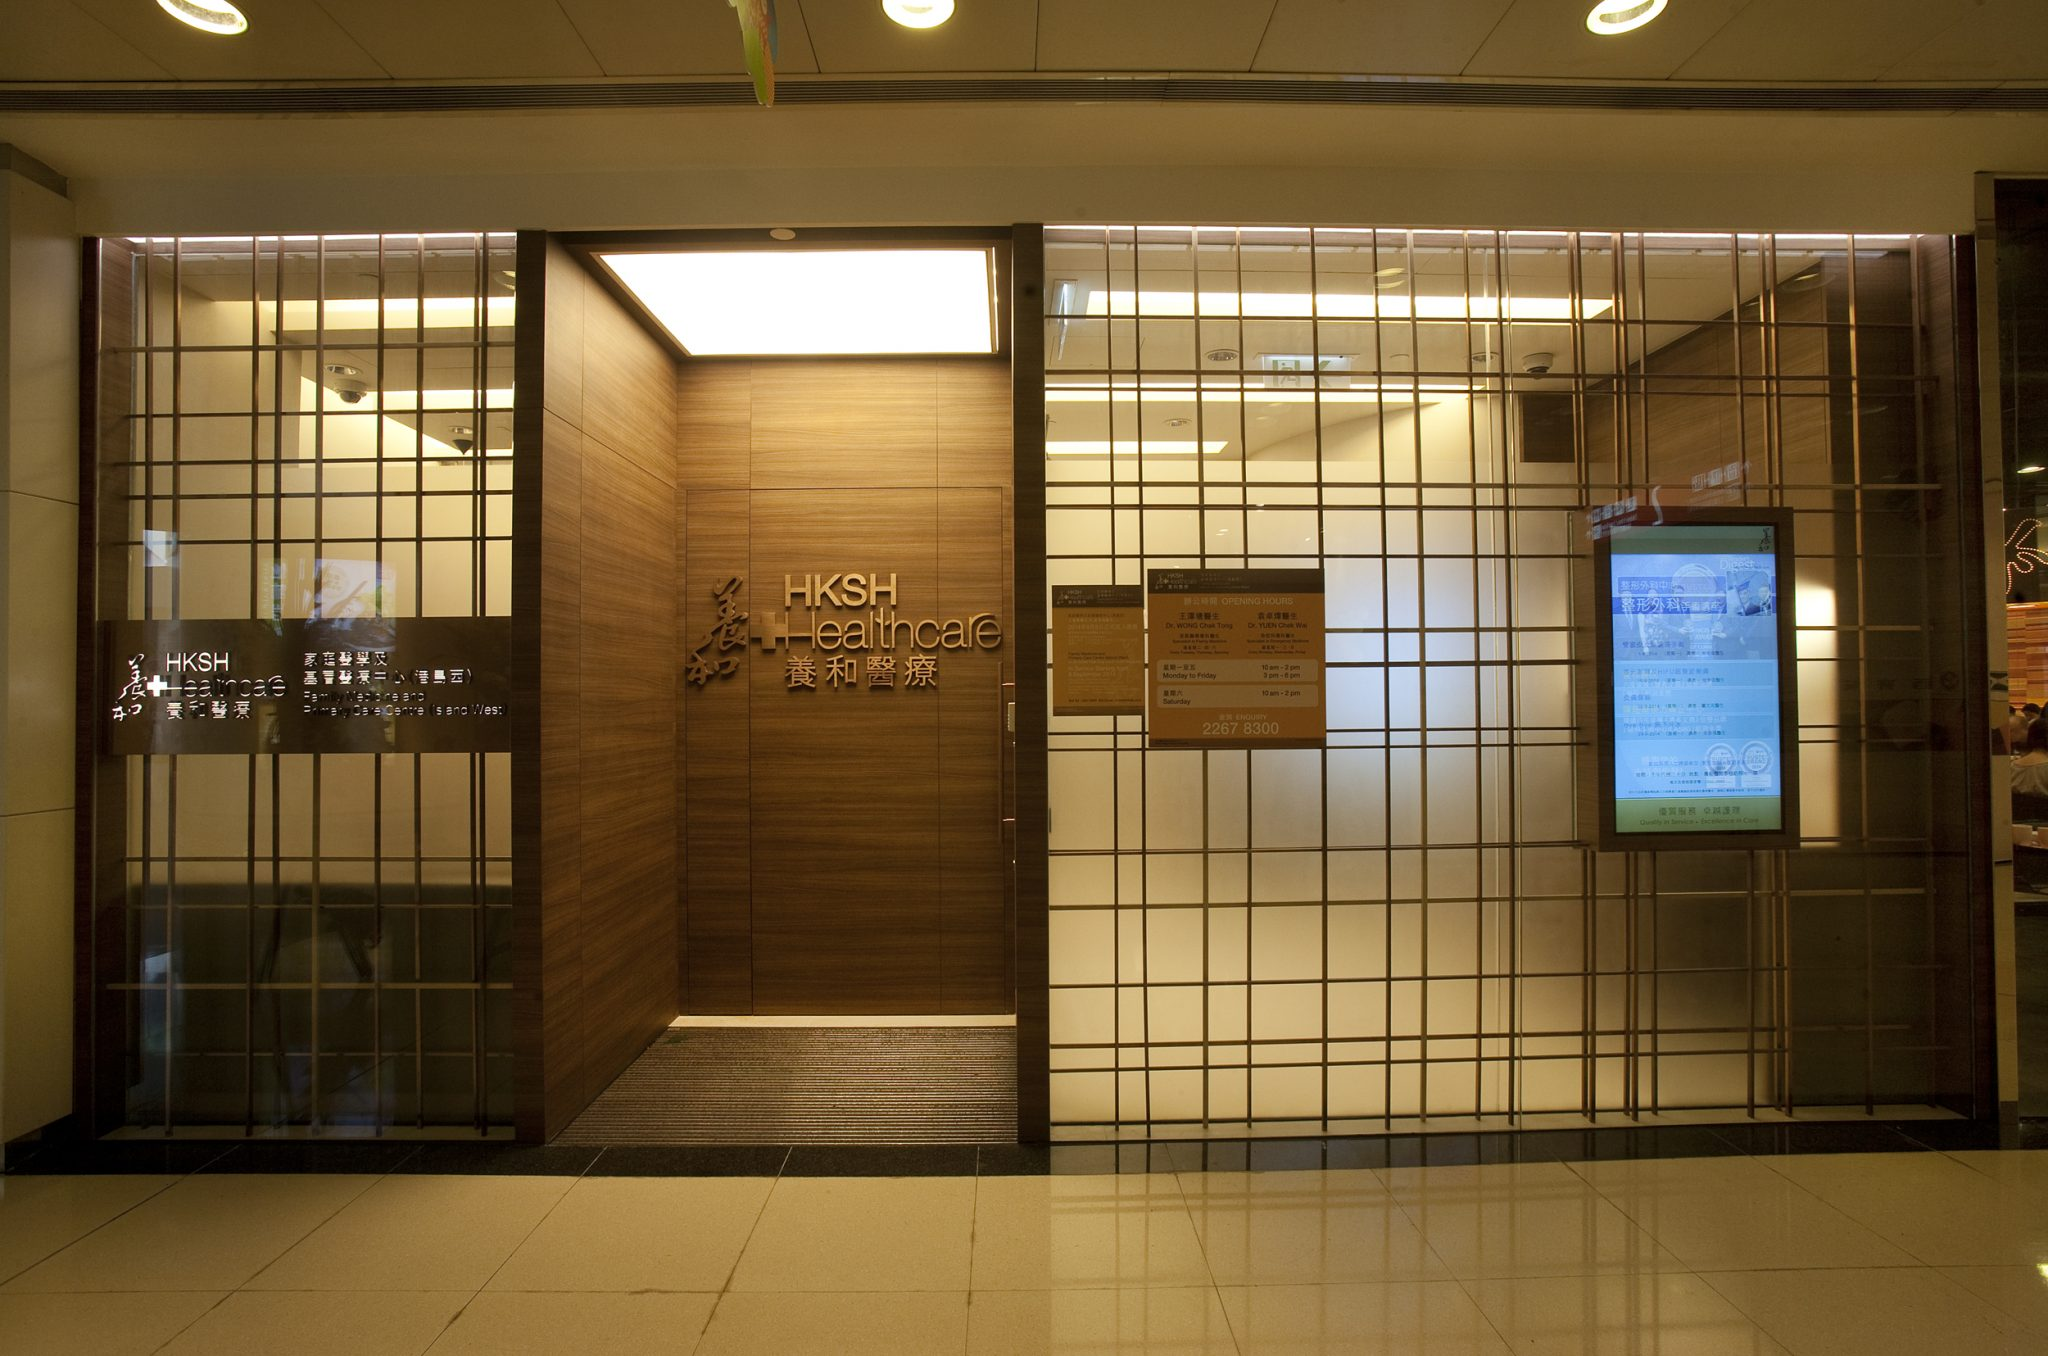 HKSH Family Medicine and Primary Care Centre